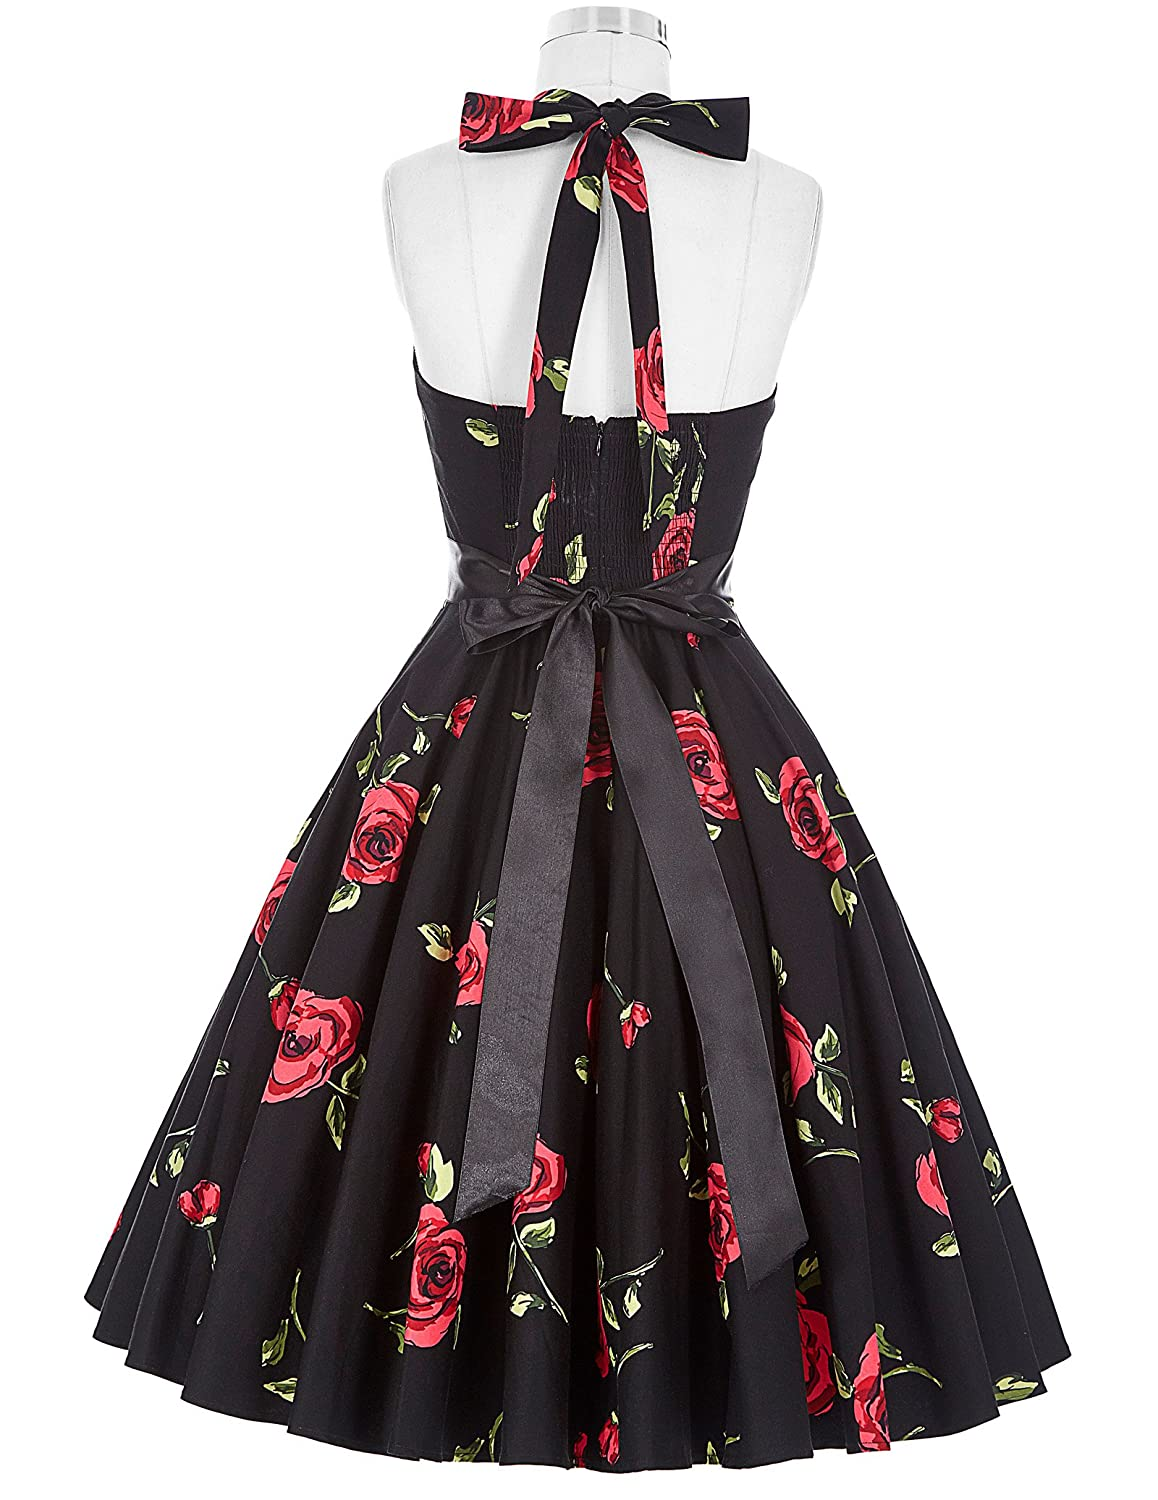 GRACE KARIN Women Vintage 1950s Halter Cocktail Party Swing Dress ...